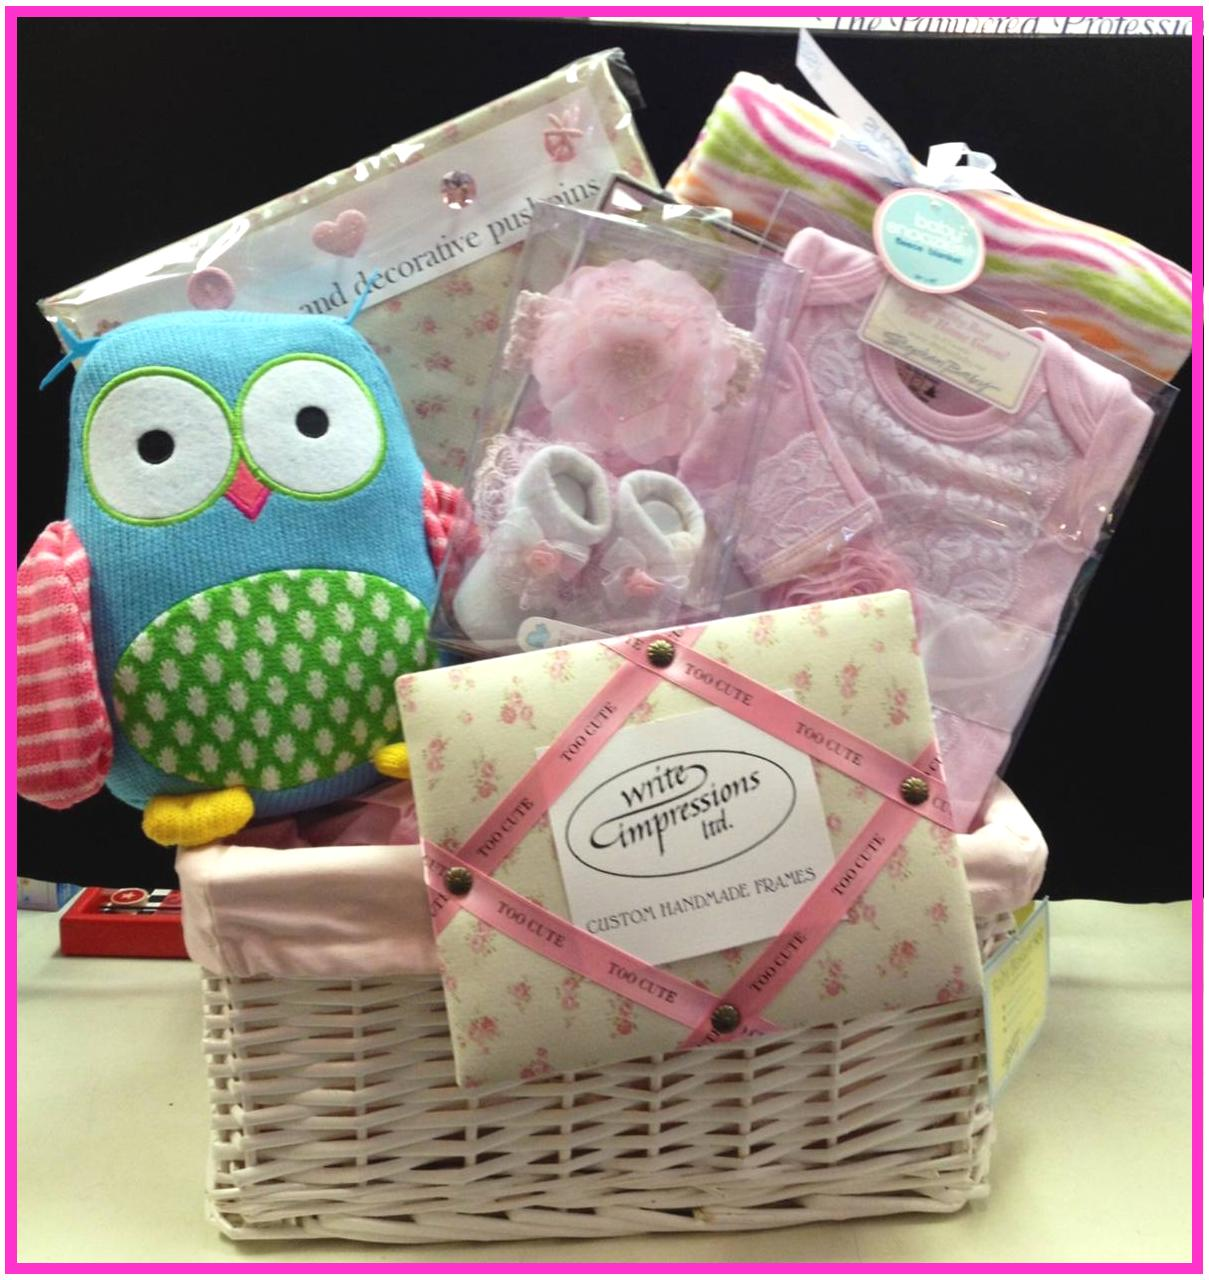 Holiday gifts baskets the pampered professional ltd hewlett ny personalized with the babys name and hand painted decorations from beautiful picture frames bookends and photo albums as well as hooded towels negle Choice Image